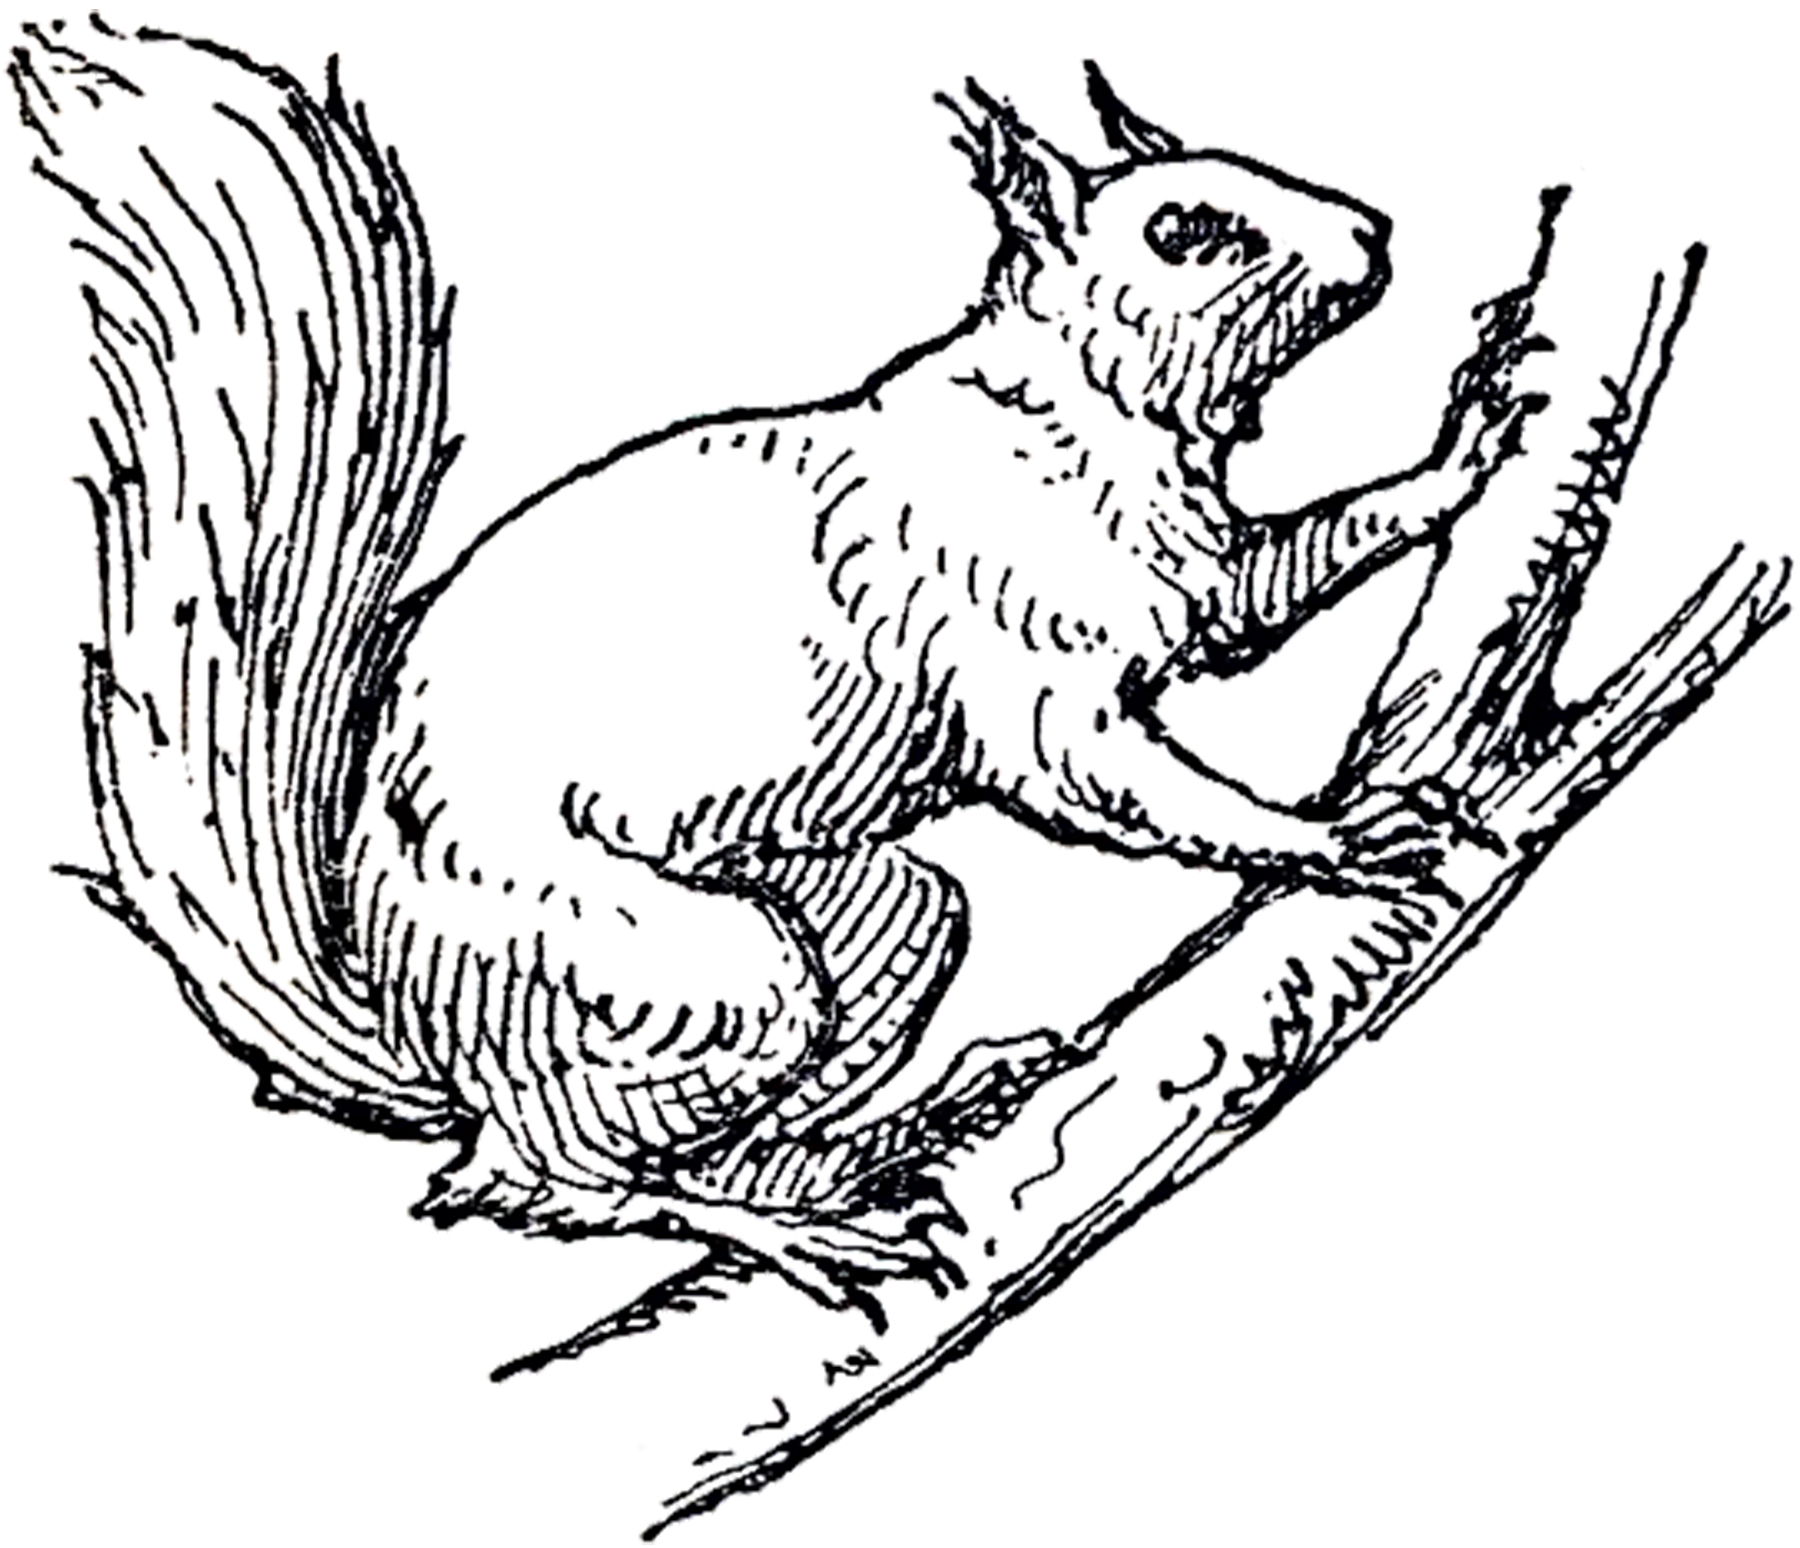 Line Drawing Squirrel : Vintage squirrel illustration the graphics fairy